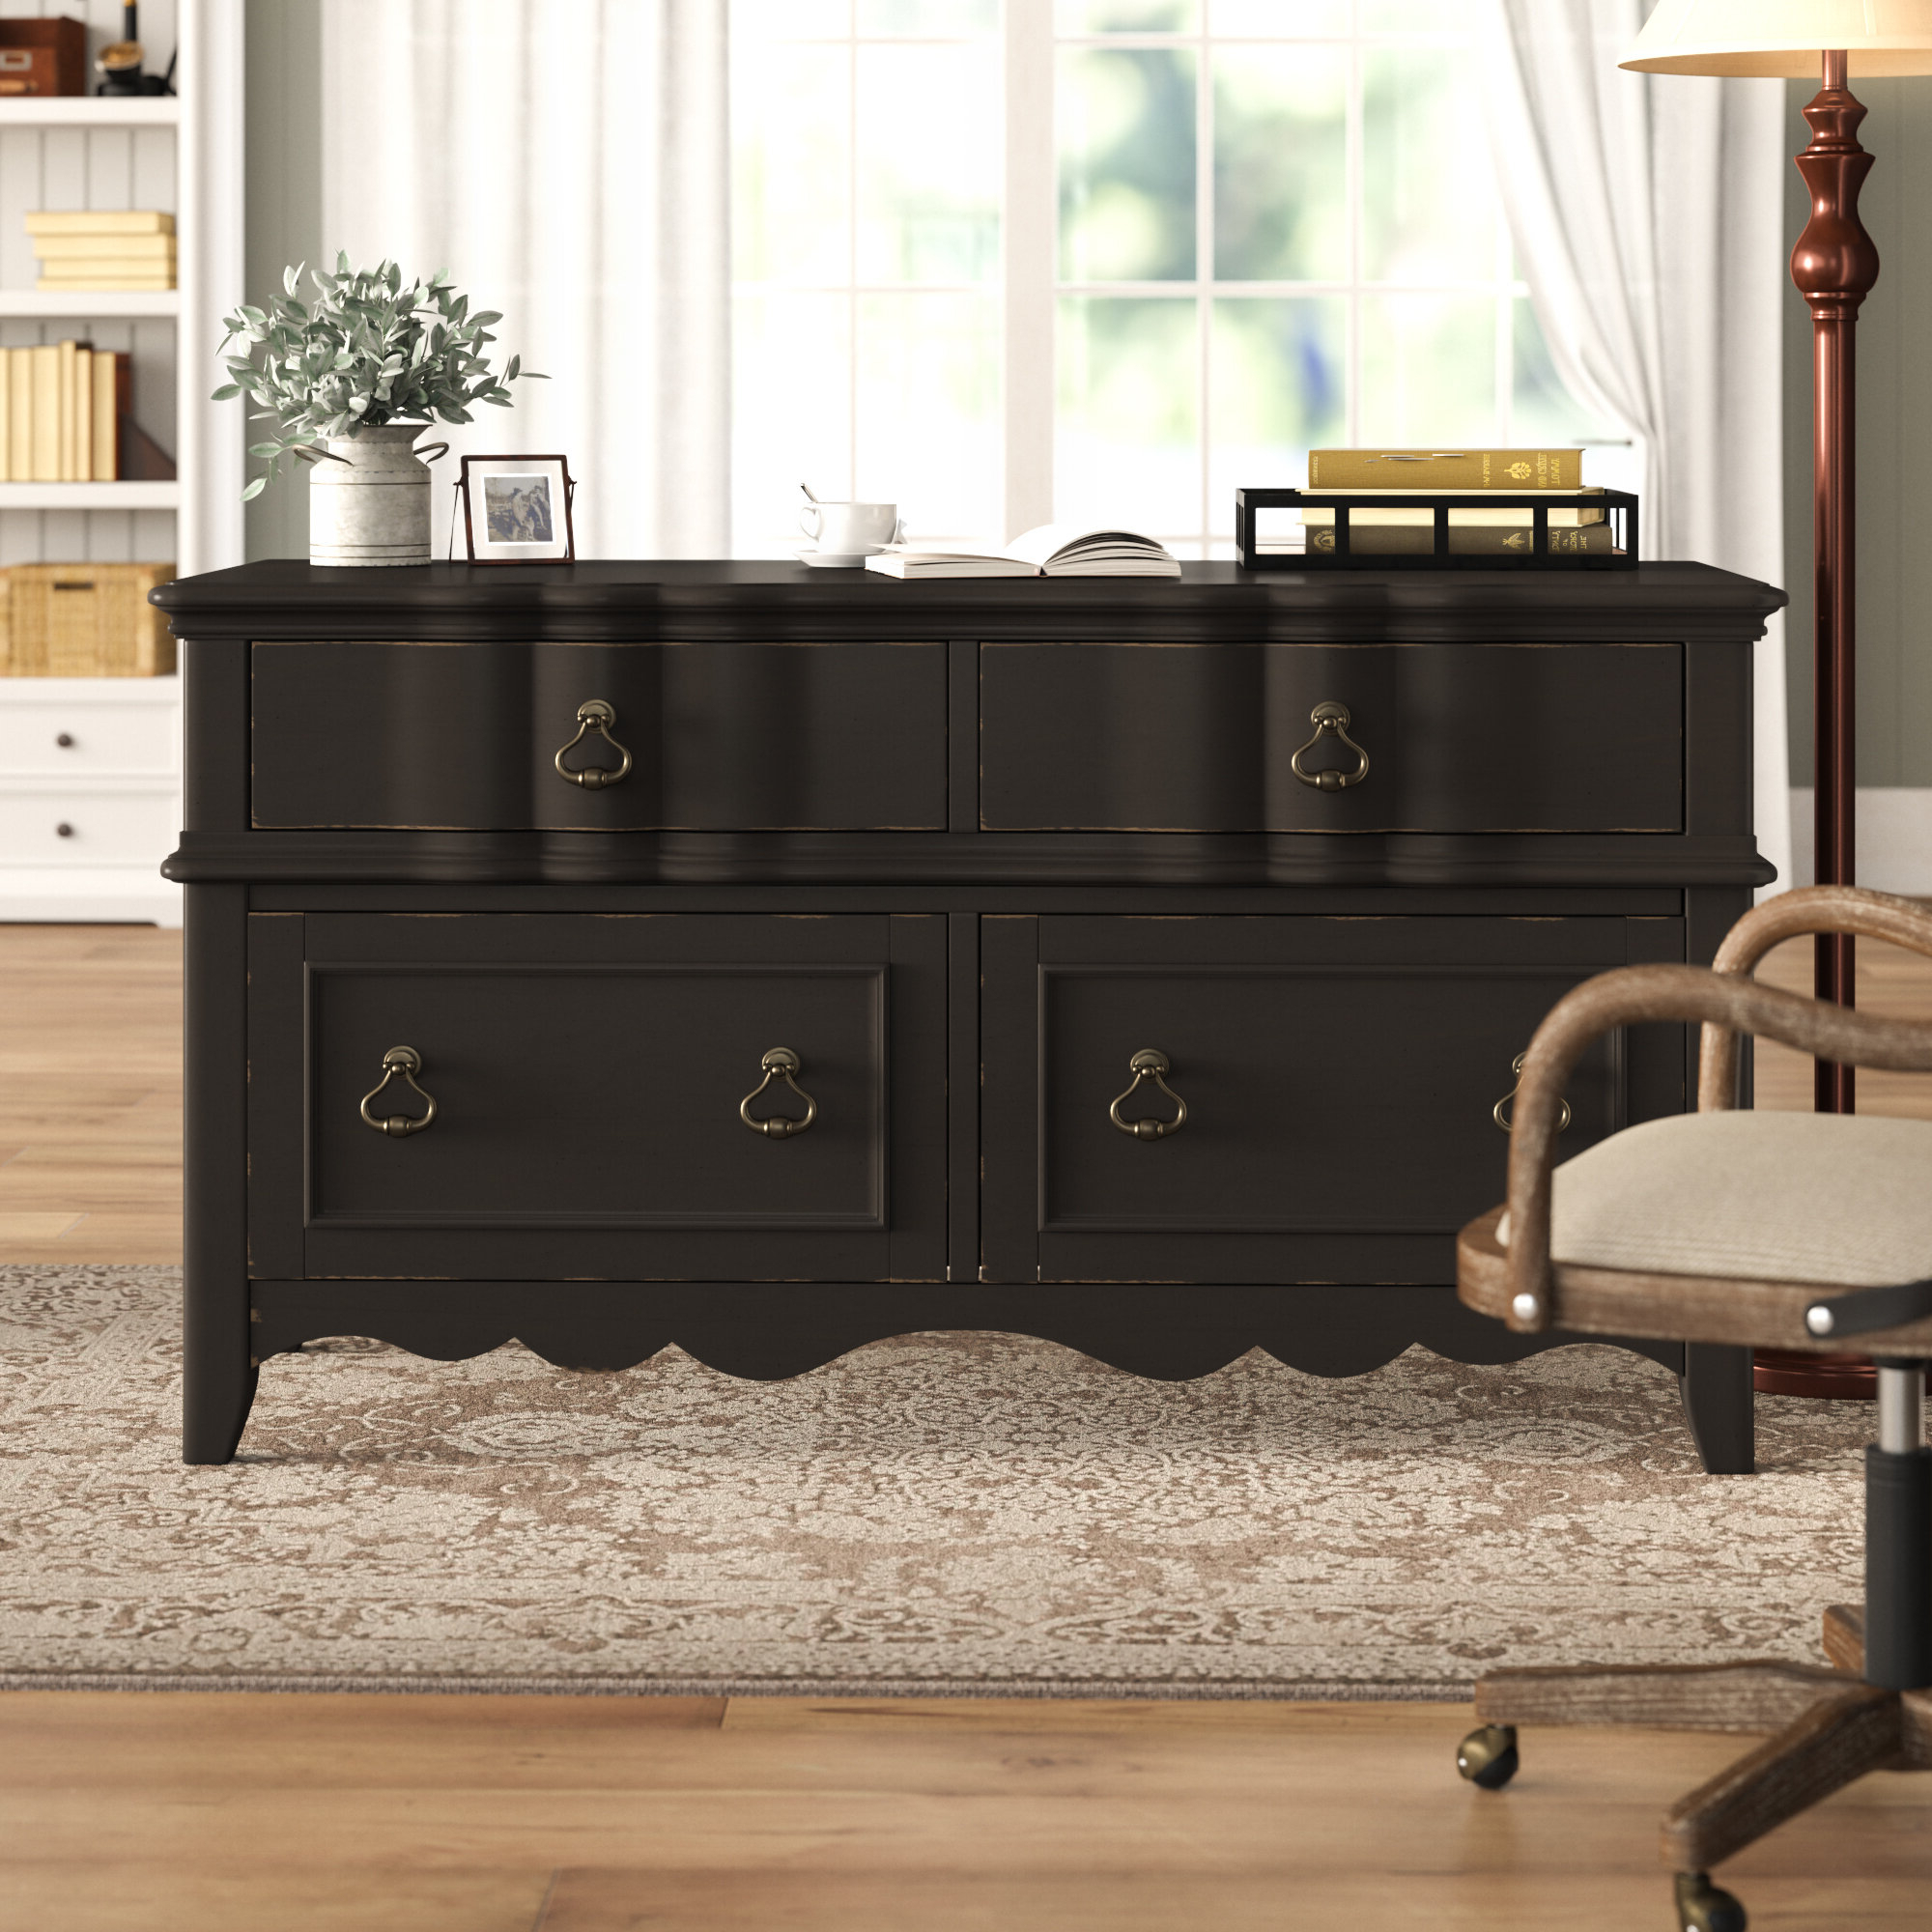 Newest Black Credenza Office Storage Cabinets You'll Love In 2021 Intended For Akimitsu Barrel Chair And Ottoman Sets (View 17 of 20)